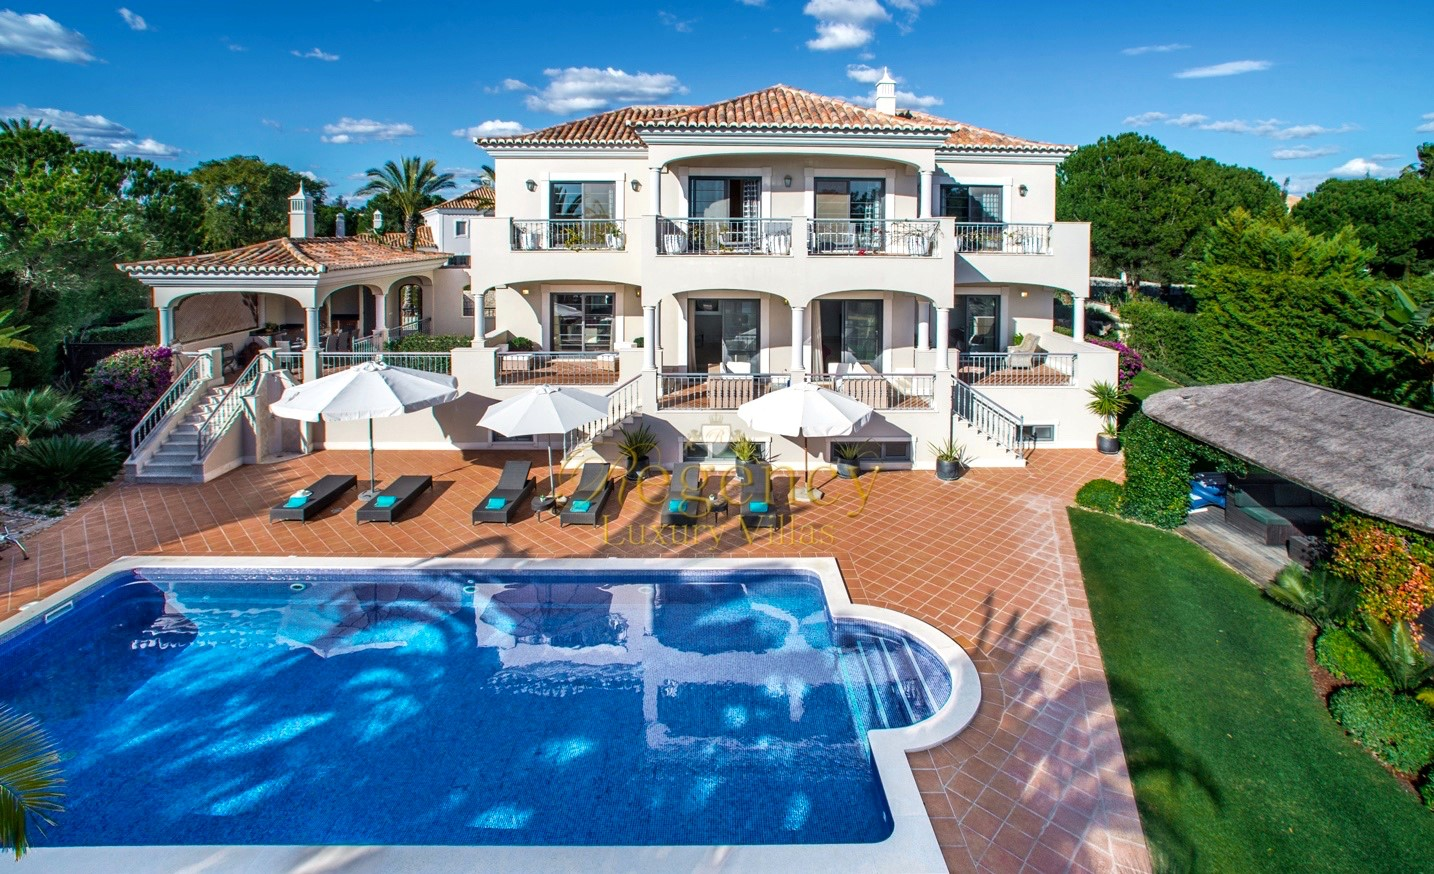 Luxury Villa To Rent In The Algarve